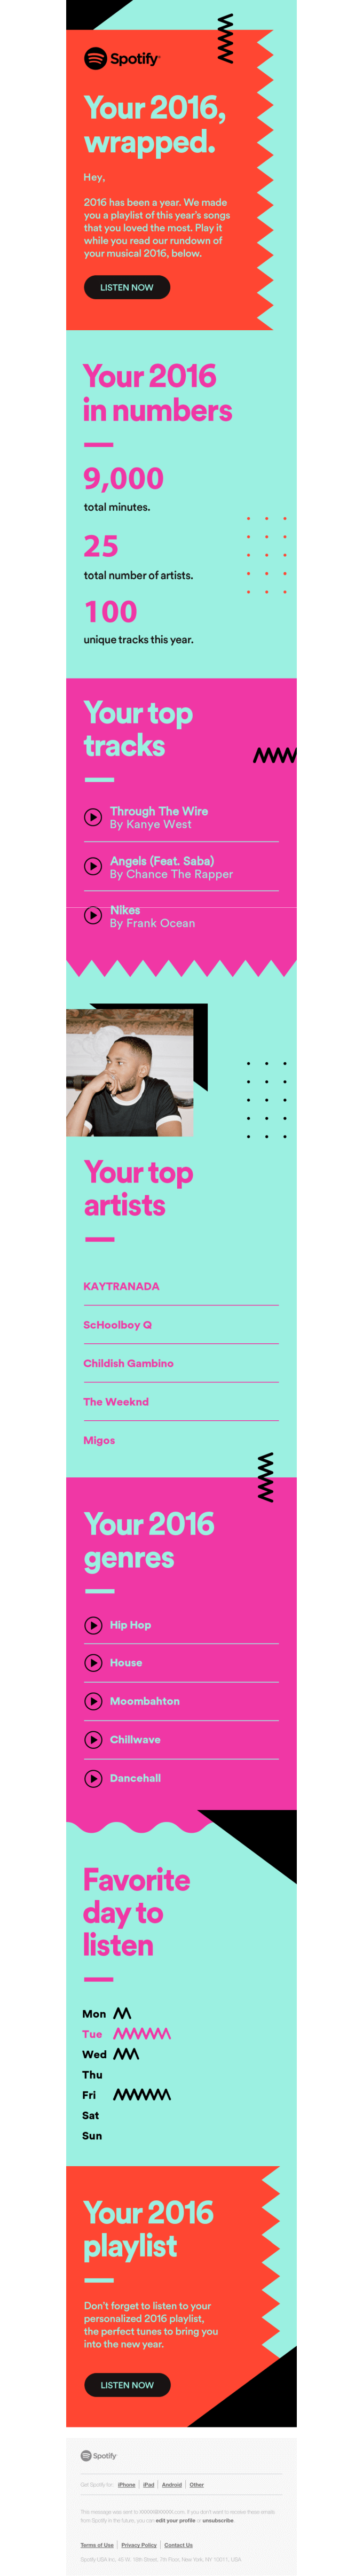 spotify 2016 email.png